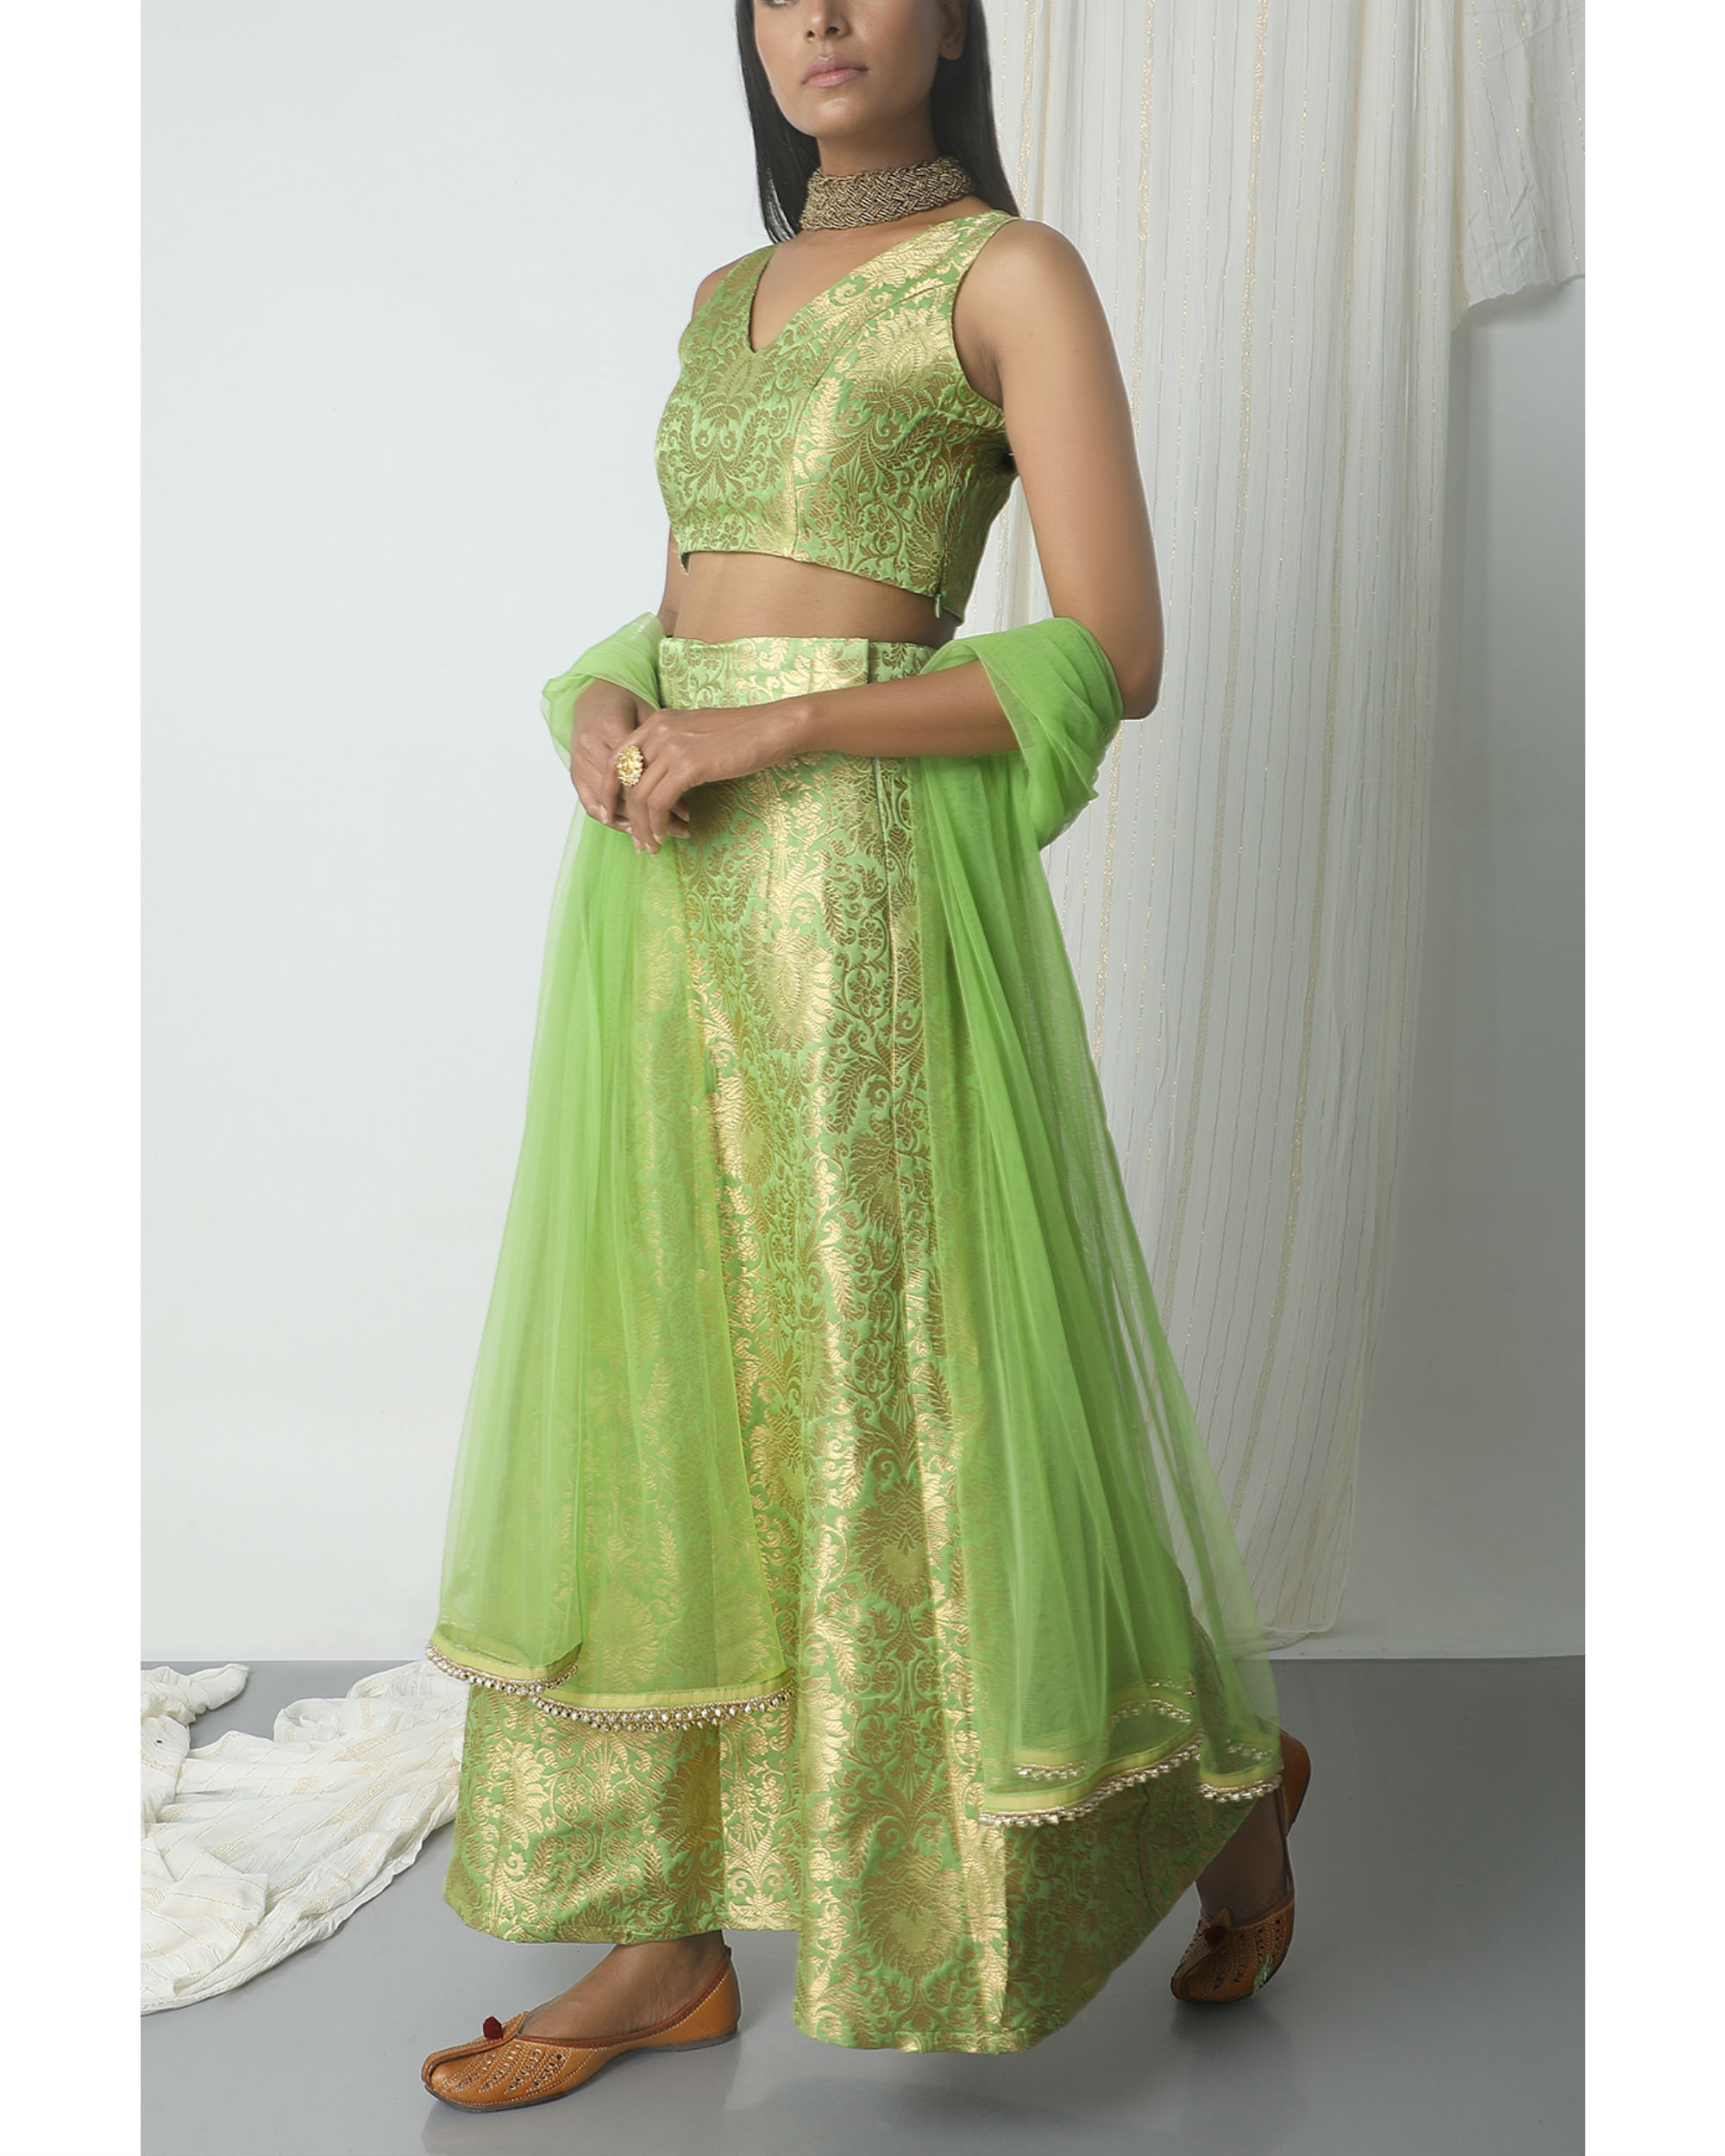 Image result for green brocade gown